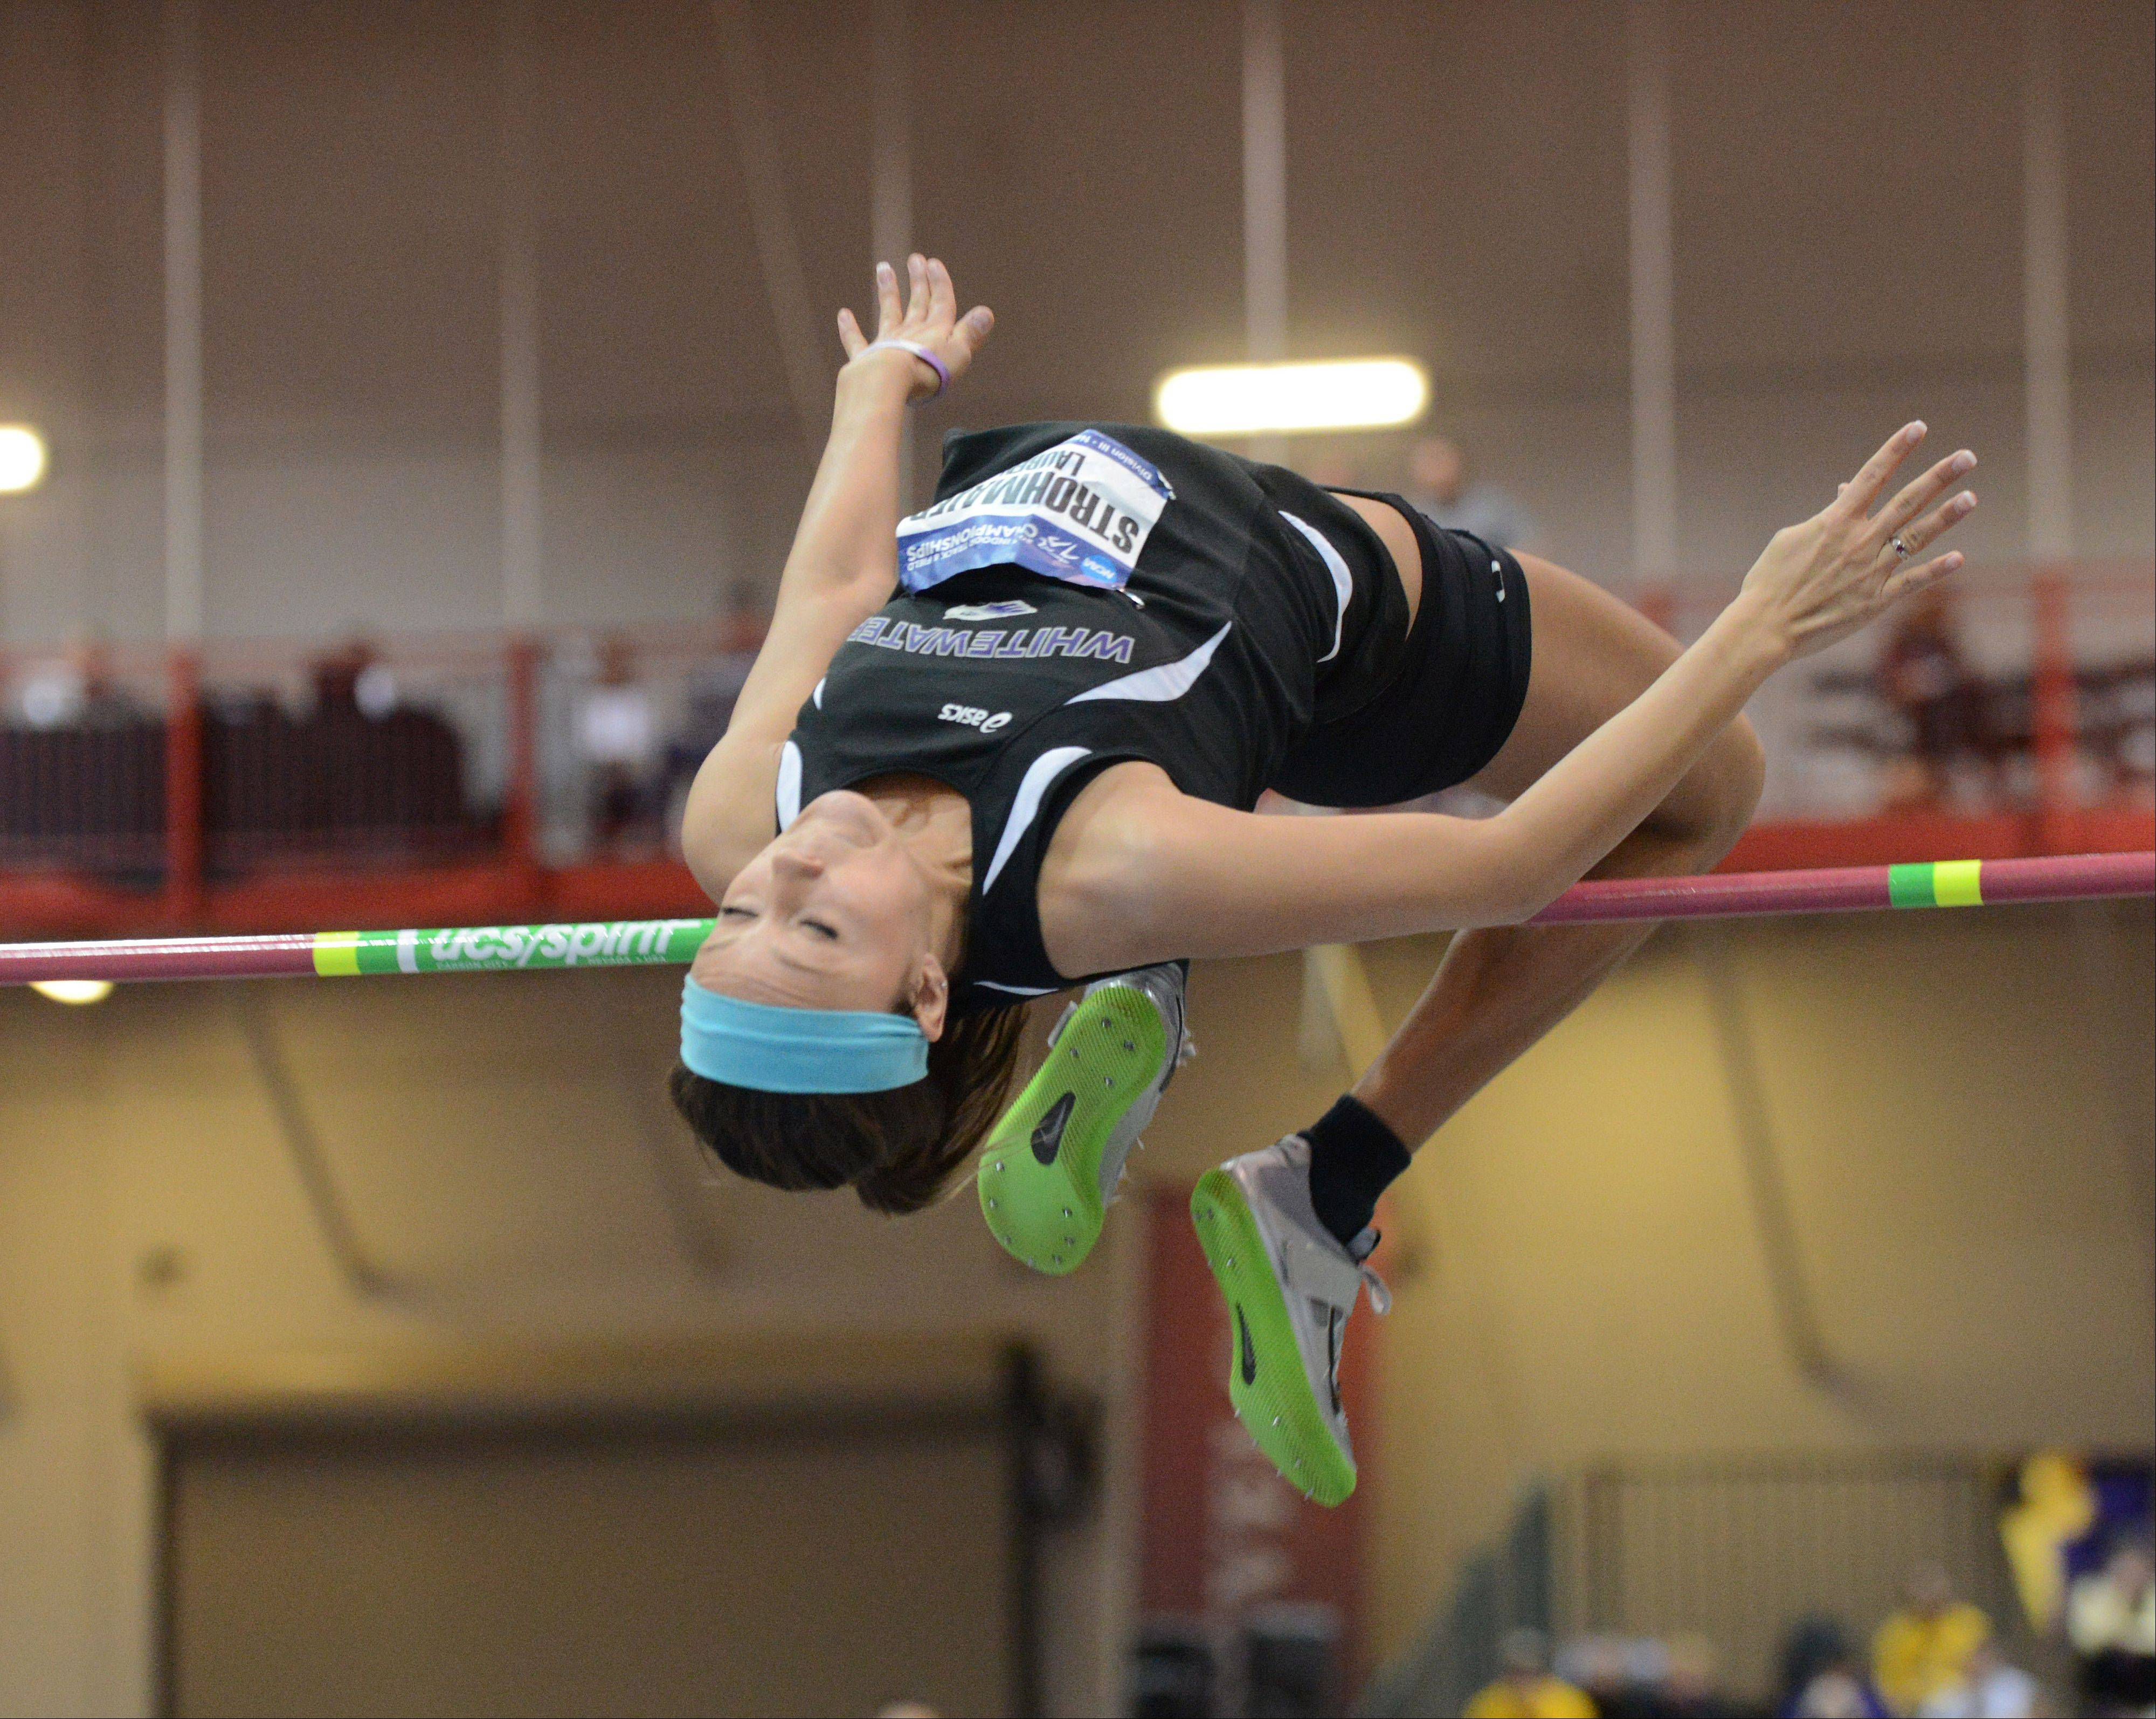 Lauren Strohmaier of the University of Wisconsin-Whitewater takes a leap in the high jump during Saturday�s NCAA Division III Indoor Track and Field Championships at North Central College. About 470 athletes competed in 15 events during the two-day championship meet.